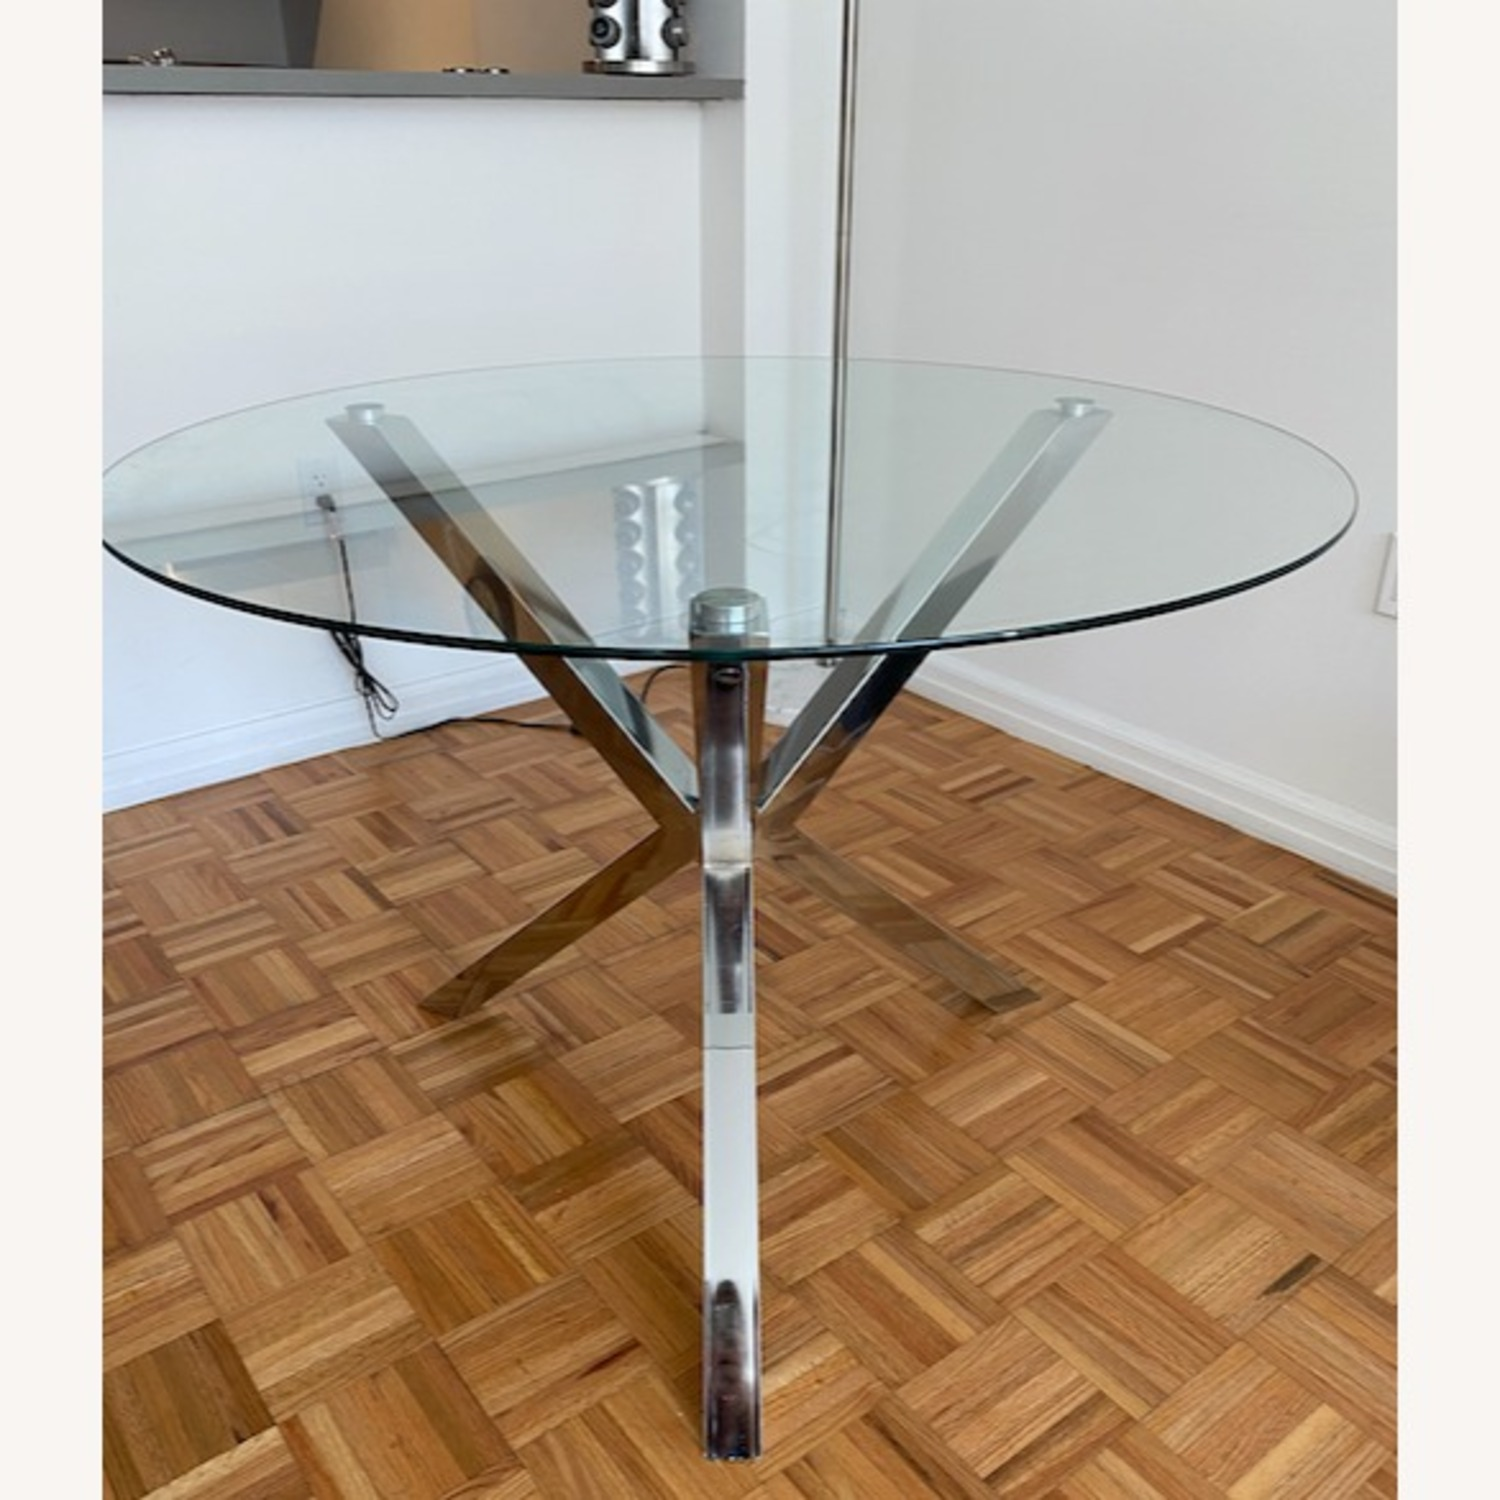 Chrome & Glass Dining Table with 4 Chairs - image-2